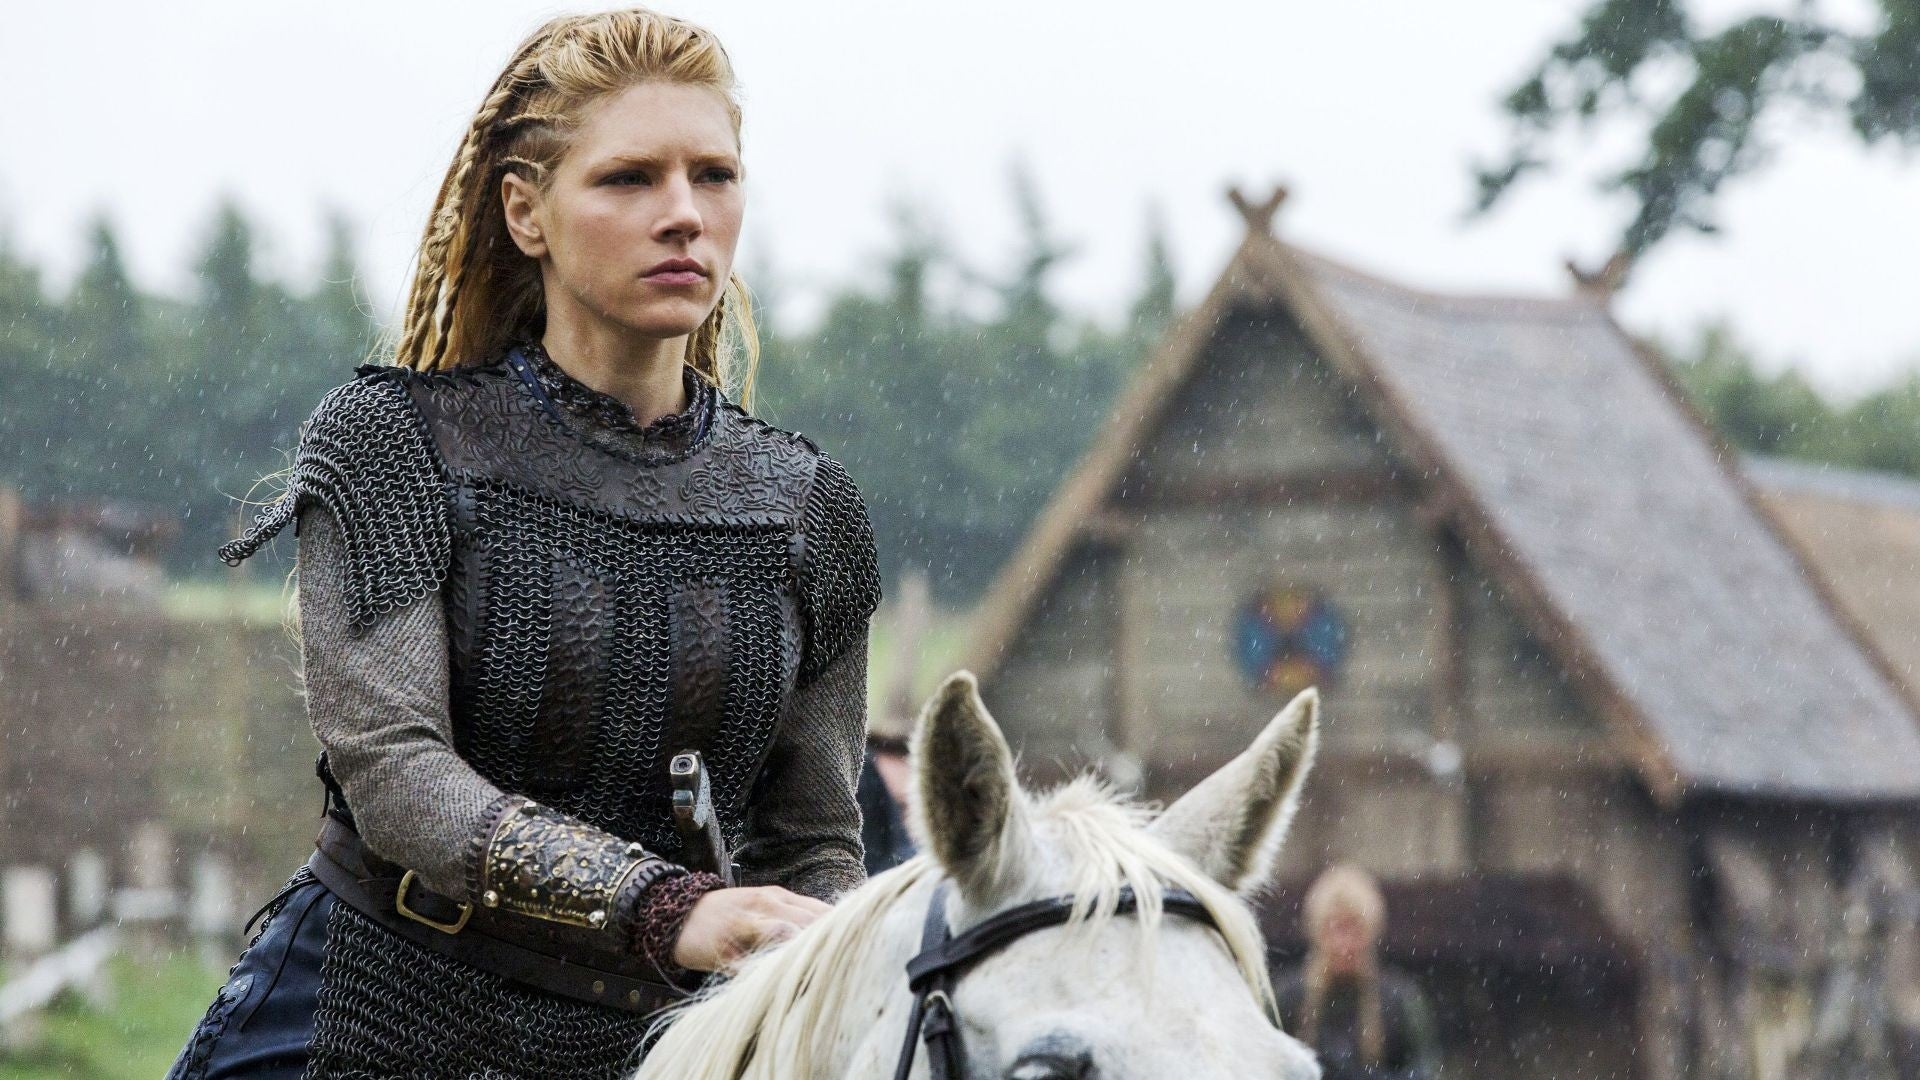 Image of Viking shieldmaiden Lagertha